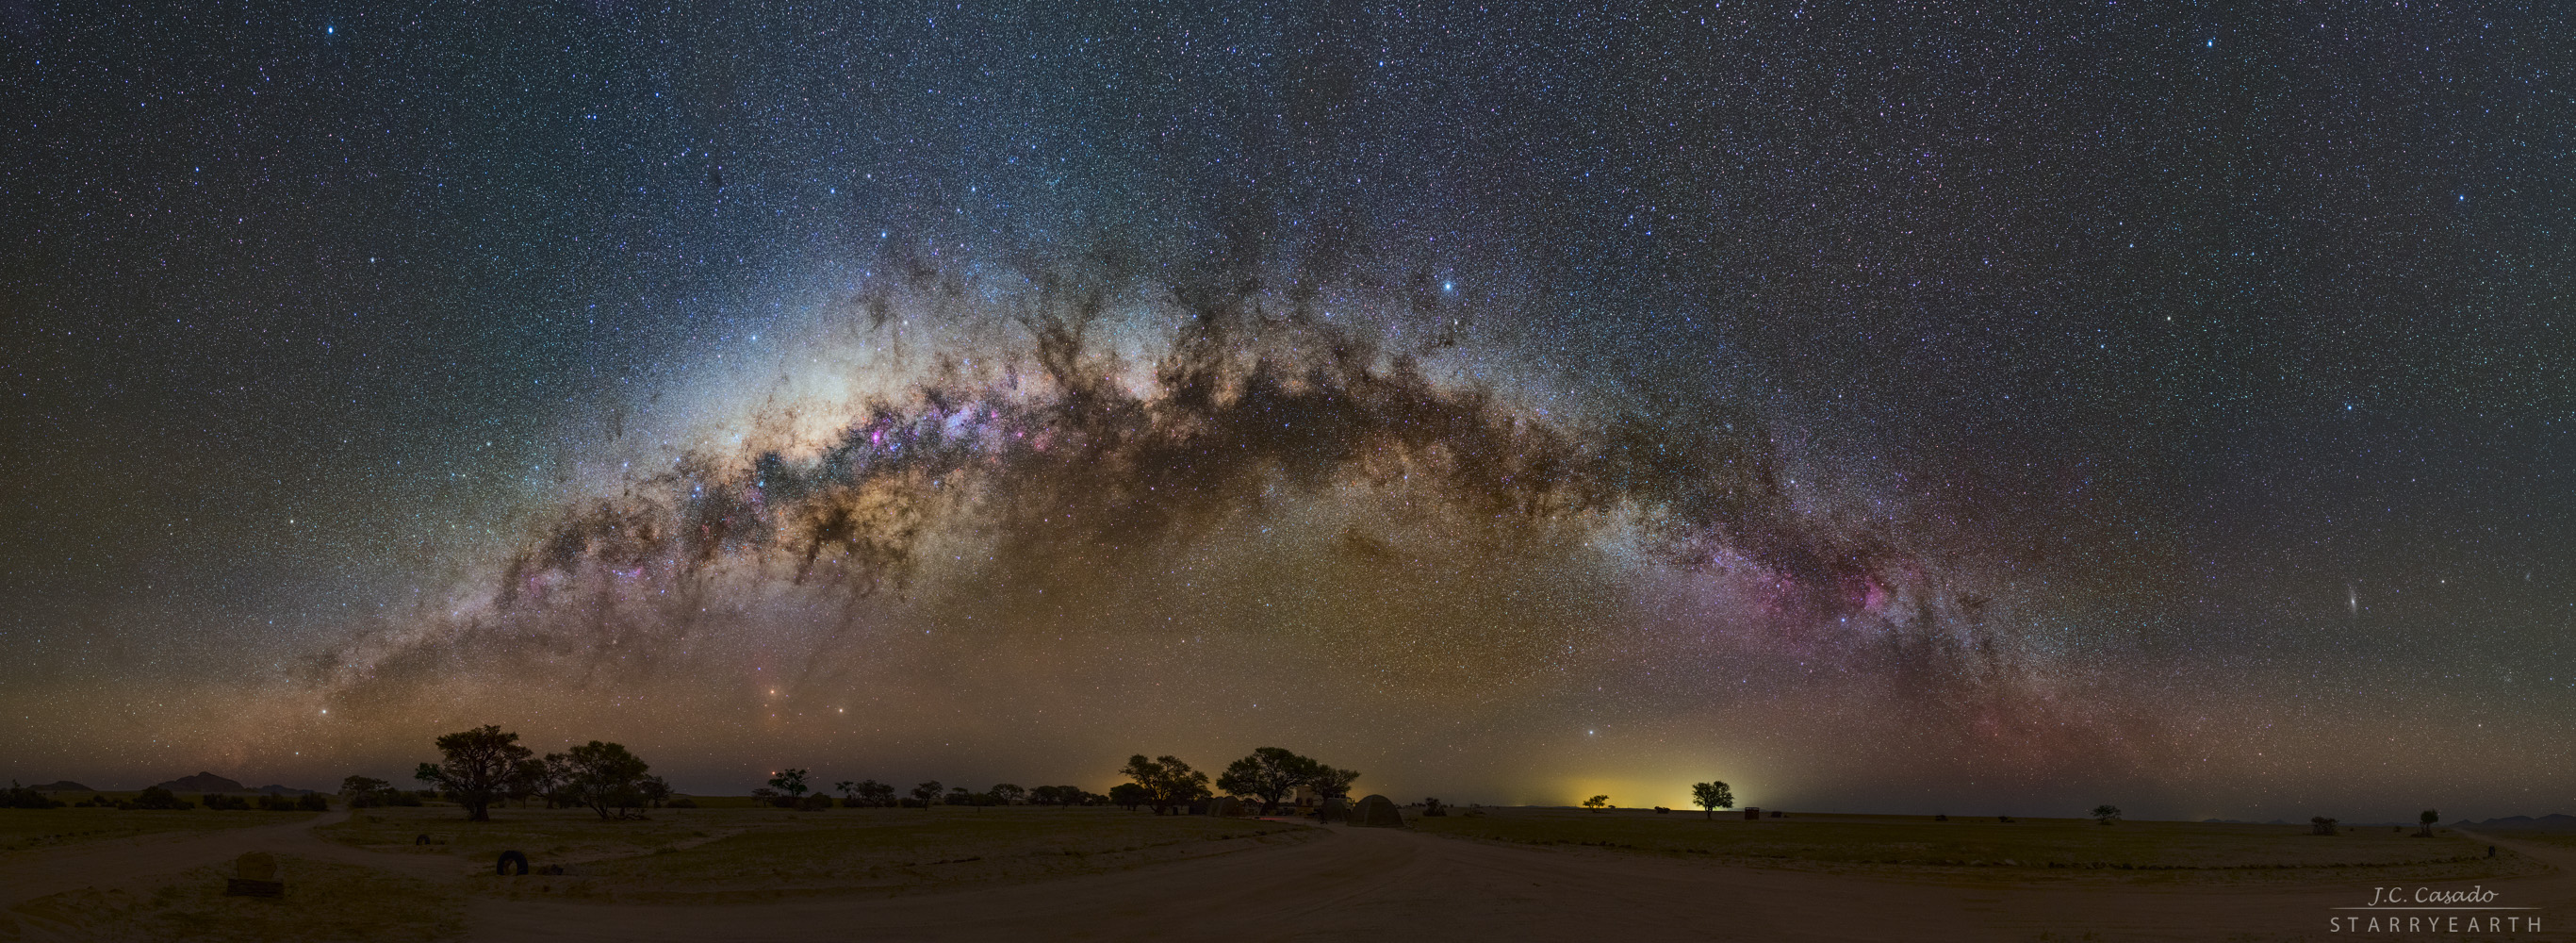 Apod 2016 August 26 The Milky Way Sets